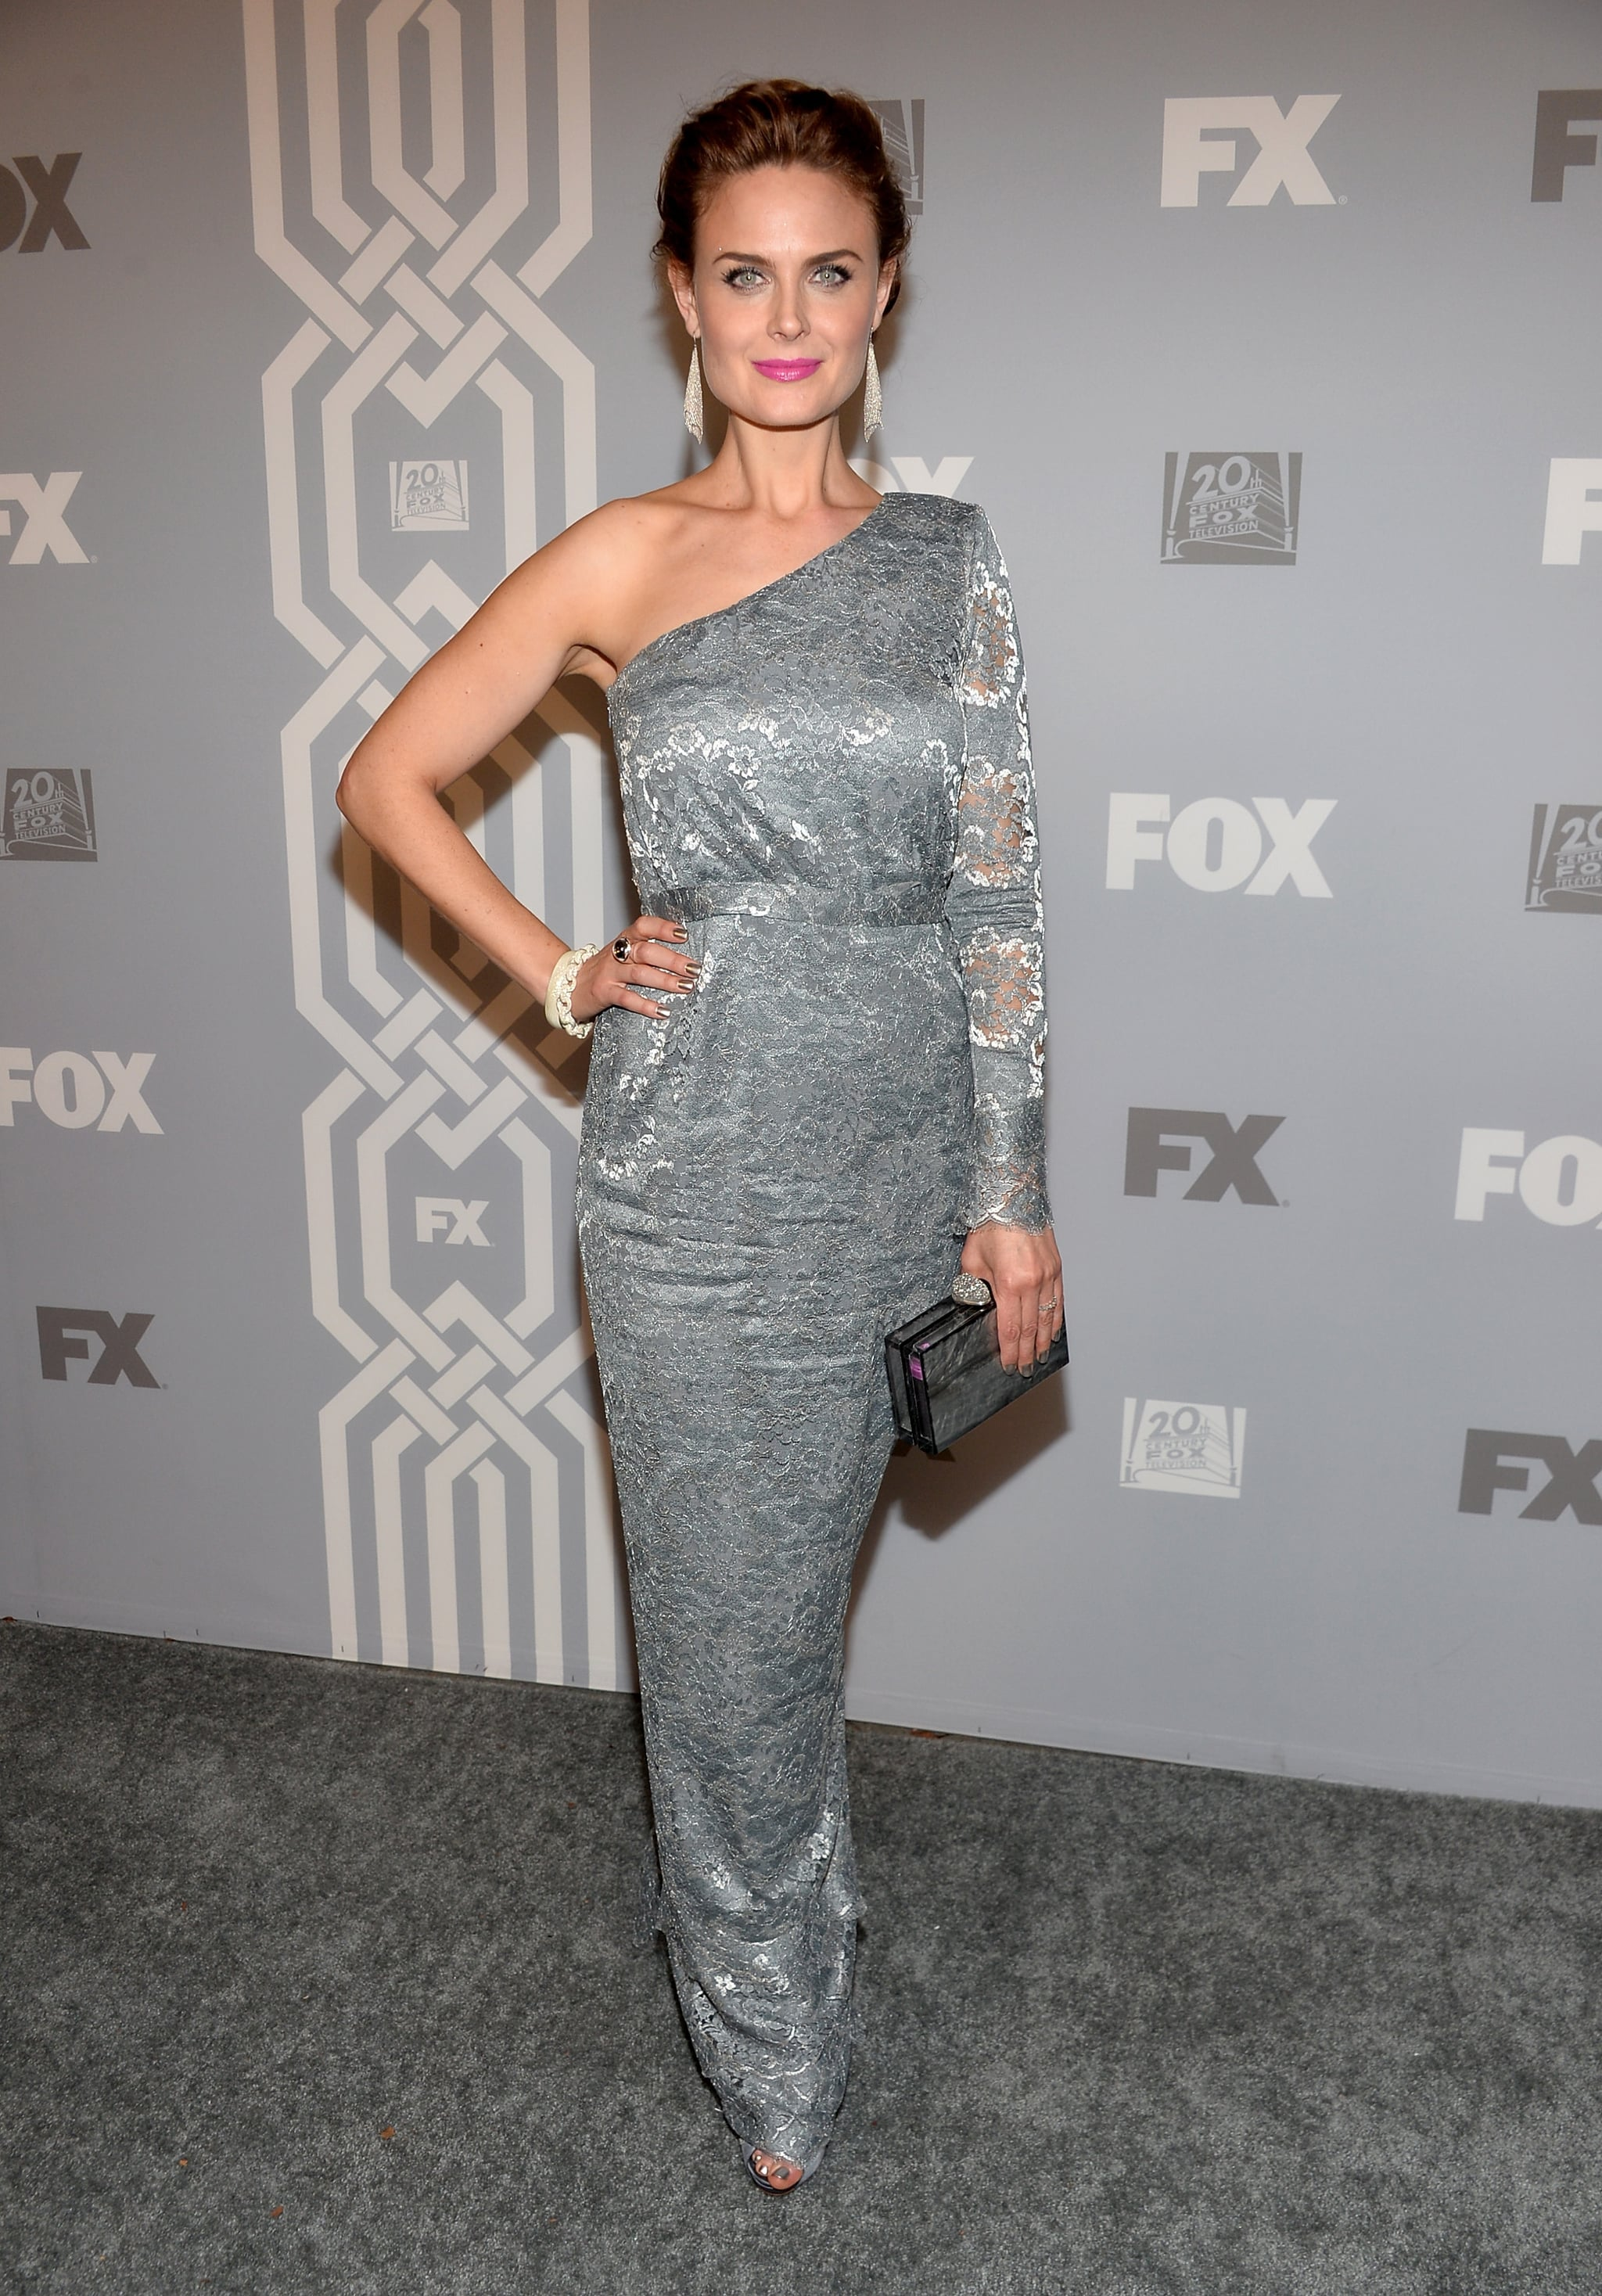 Emily Deschanel joined her sister Zooey at the Fox bash.